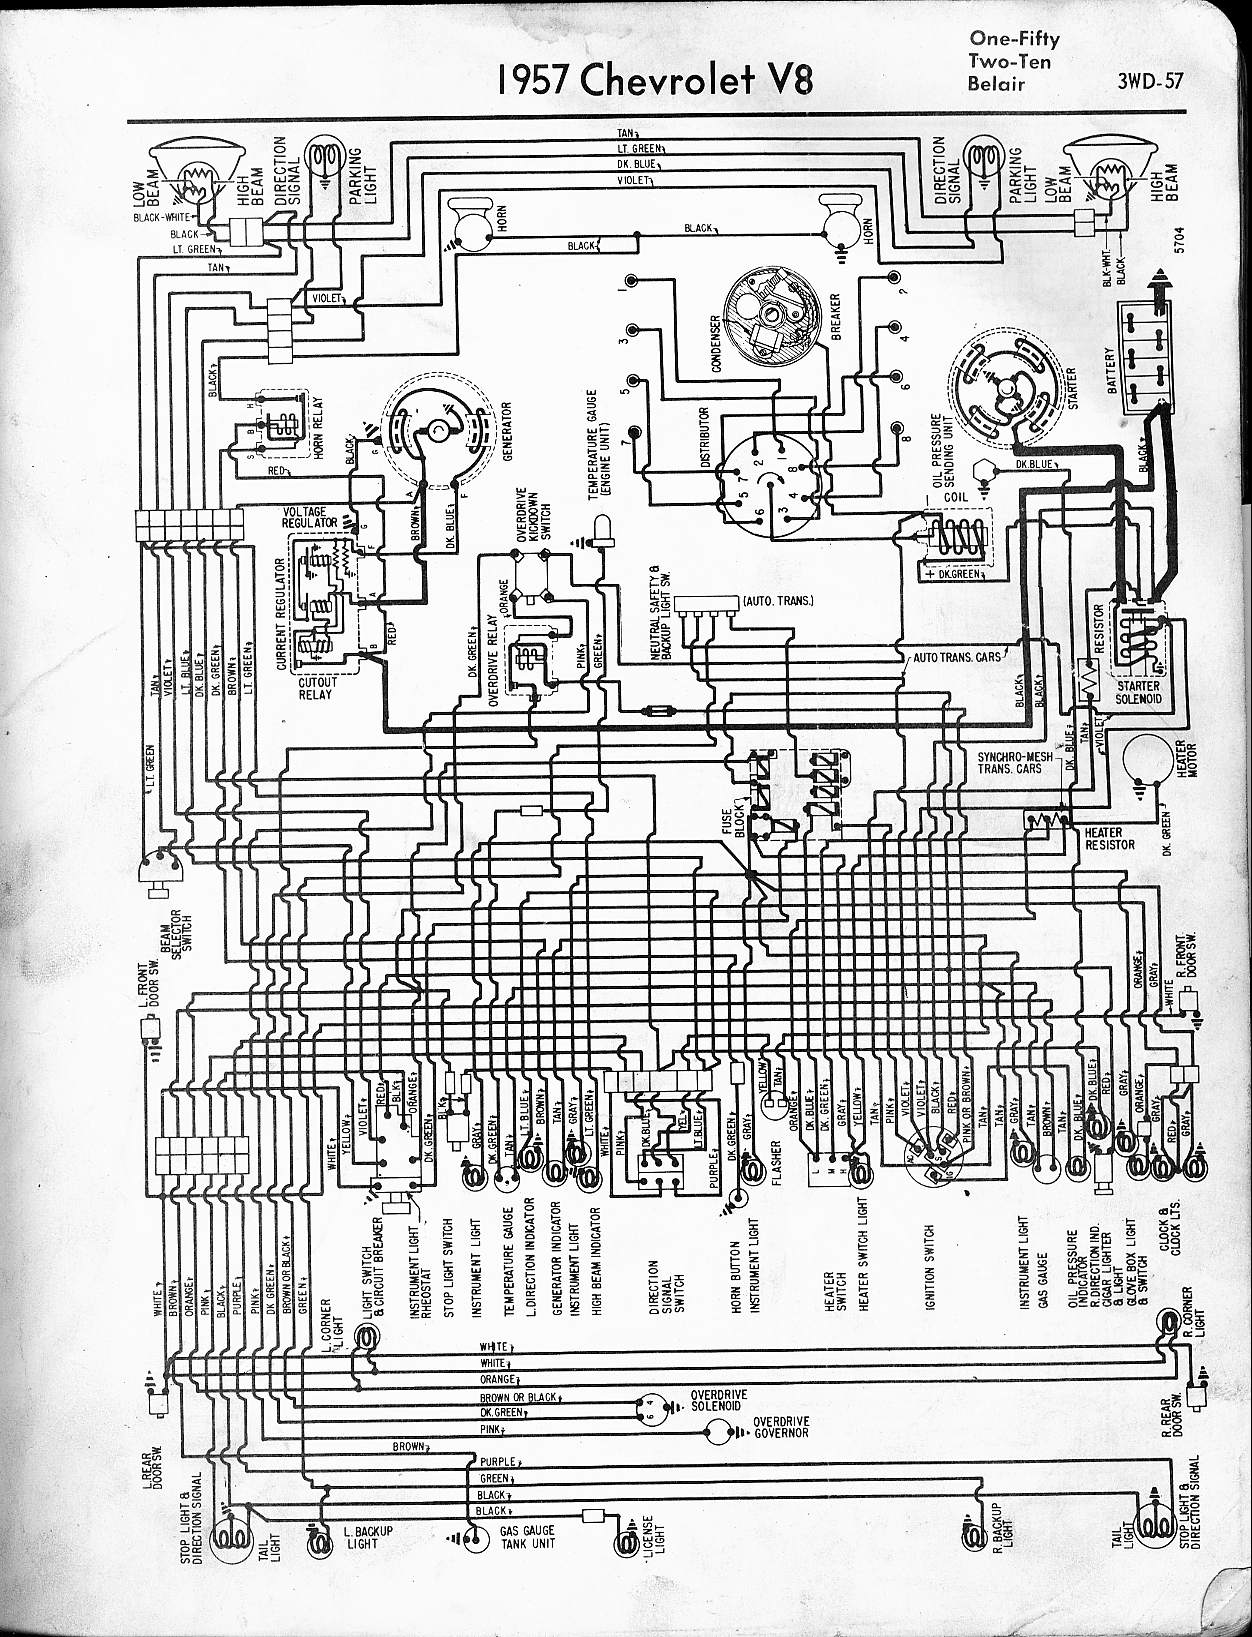 MWireChev57_3WD 057 57 65 chevy wiring diagrams 1957 bel air wiring diagram at gsmx.co